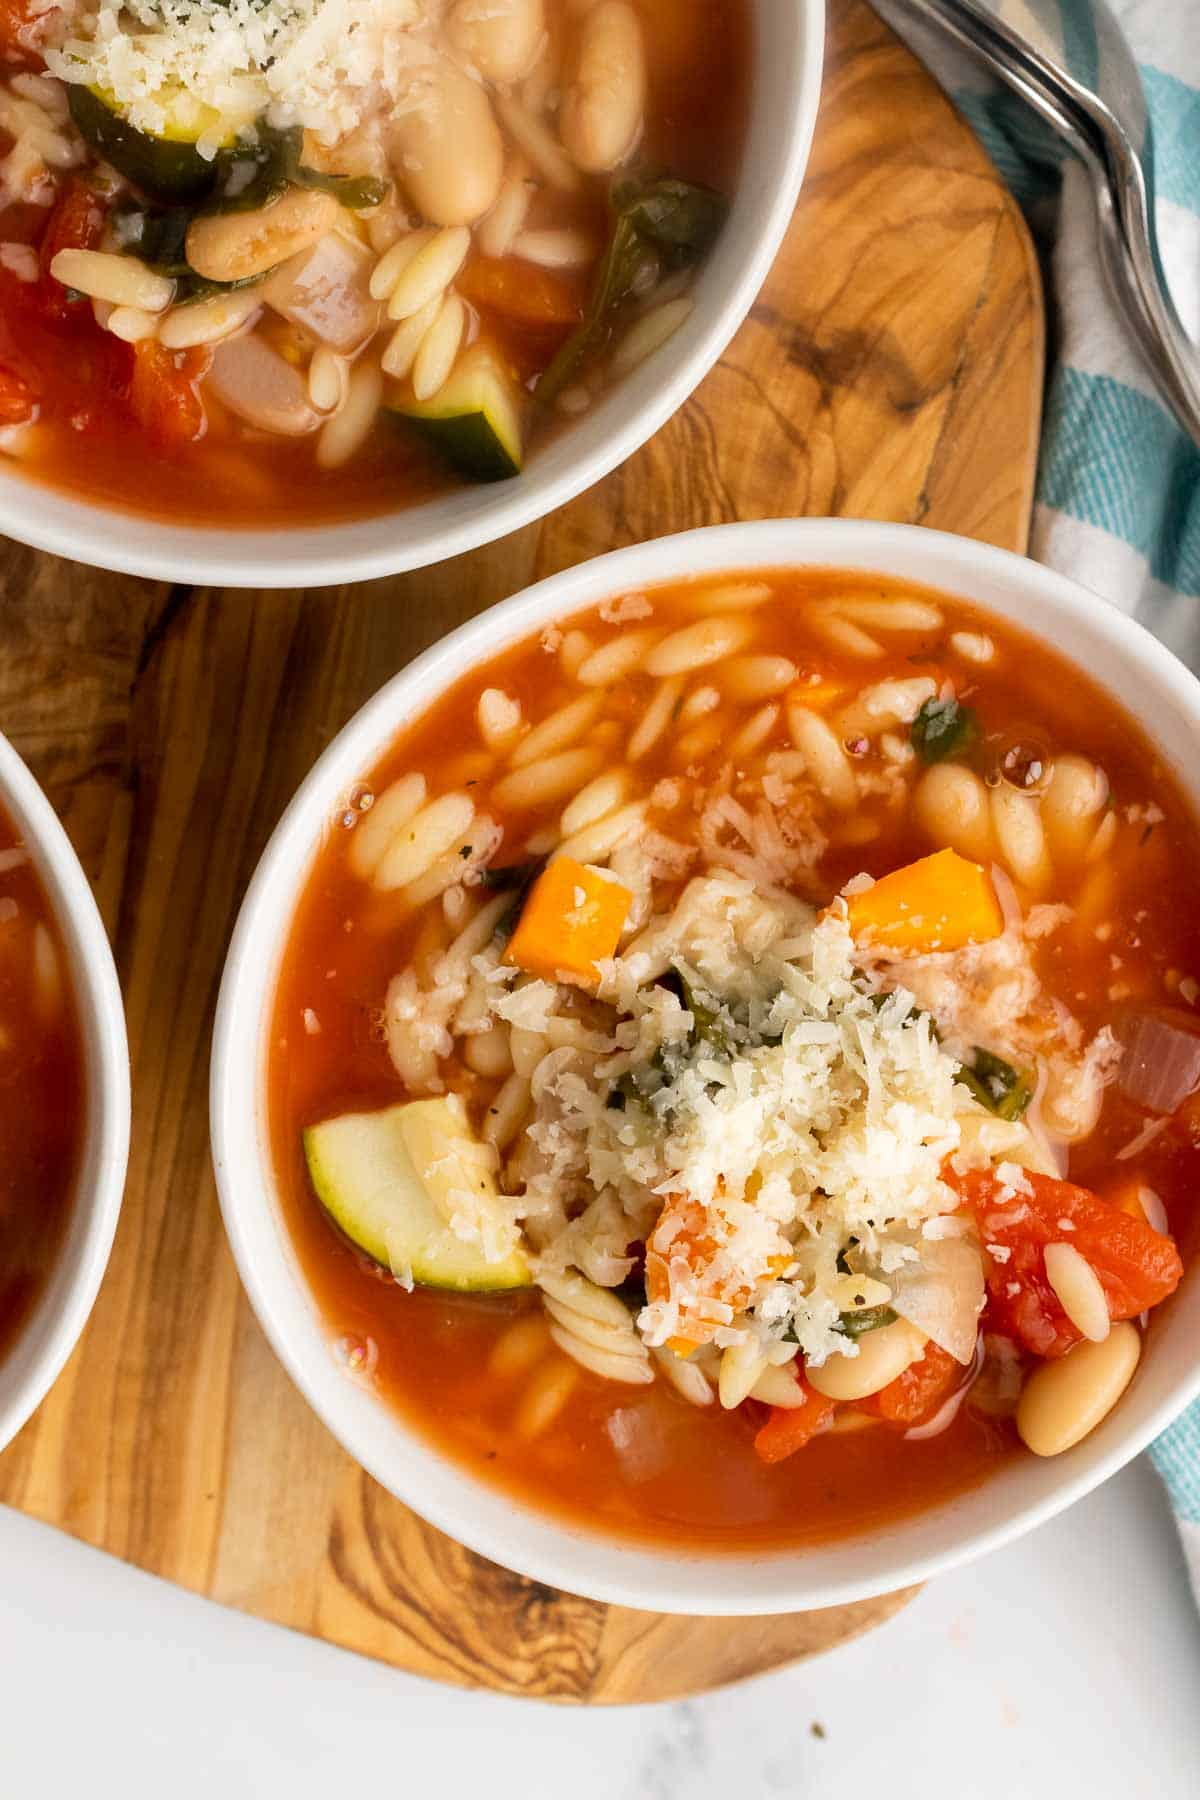 Bowl of slow cooker minestrone with grated cheese on top